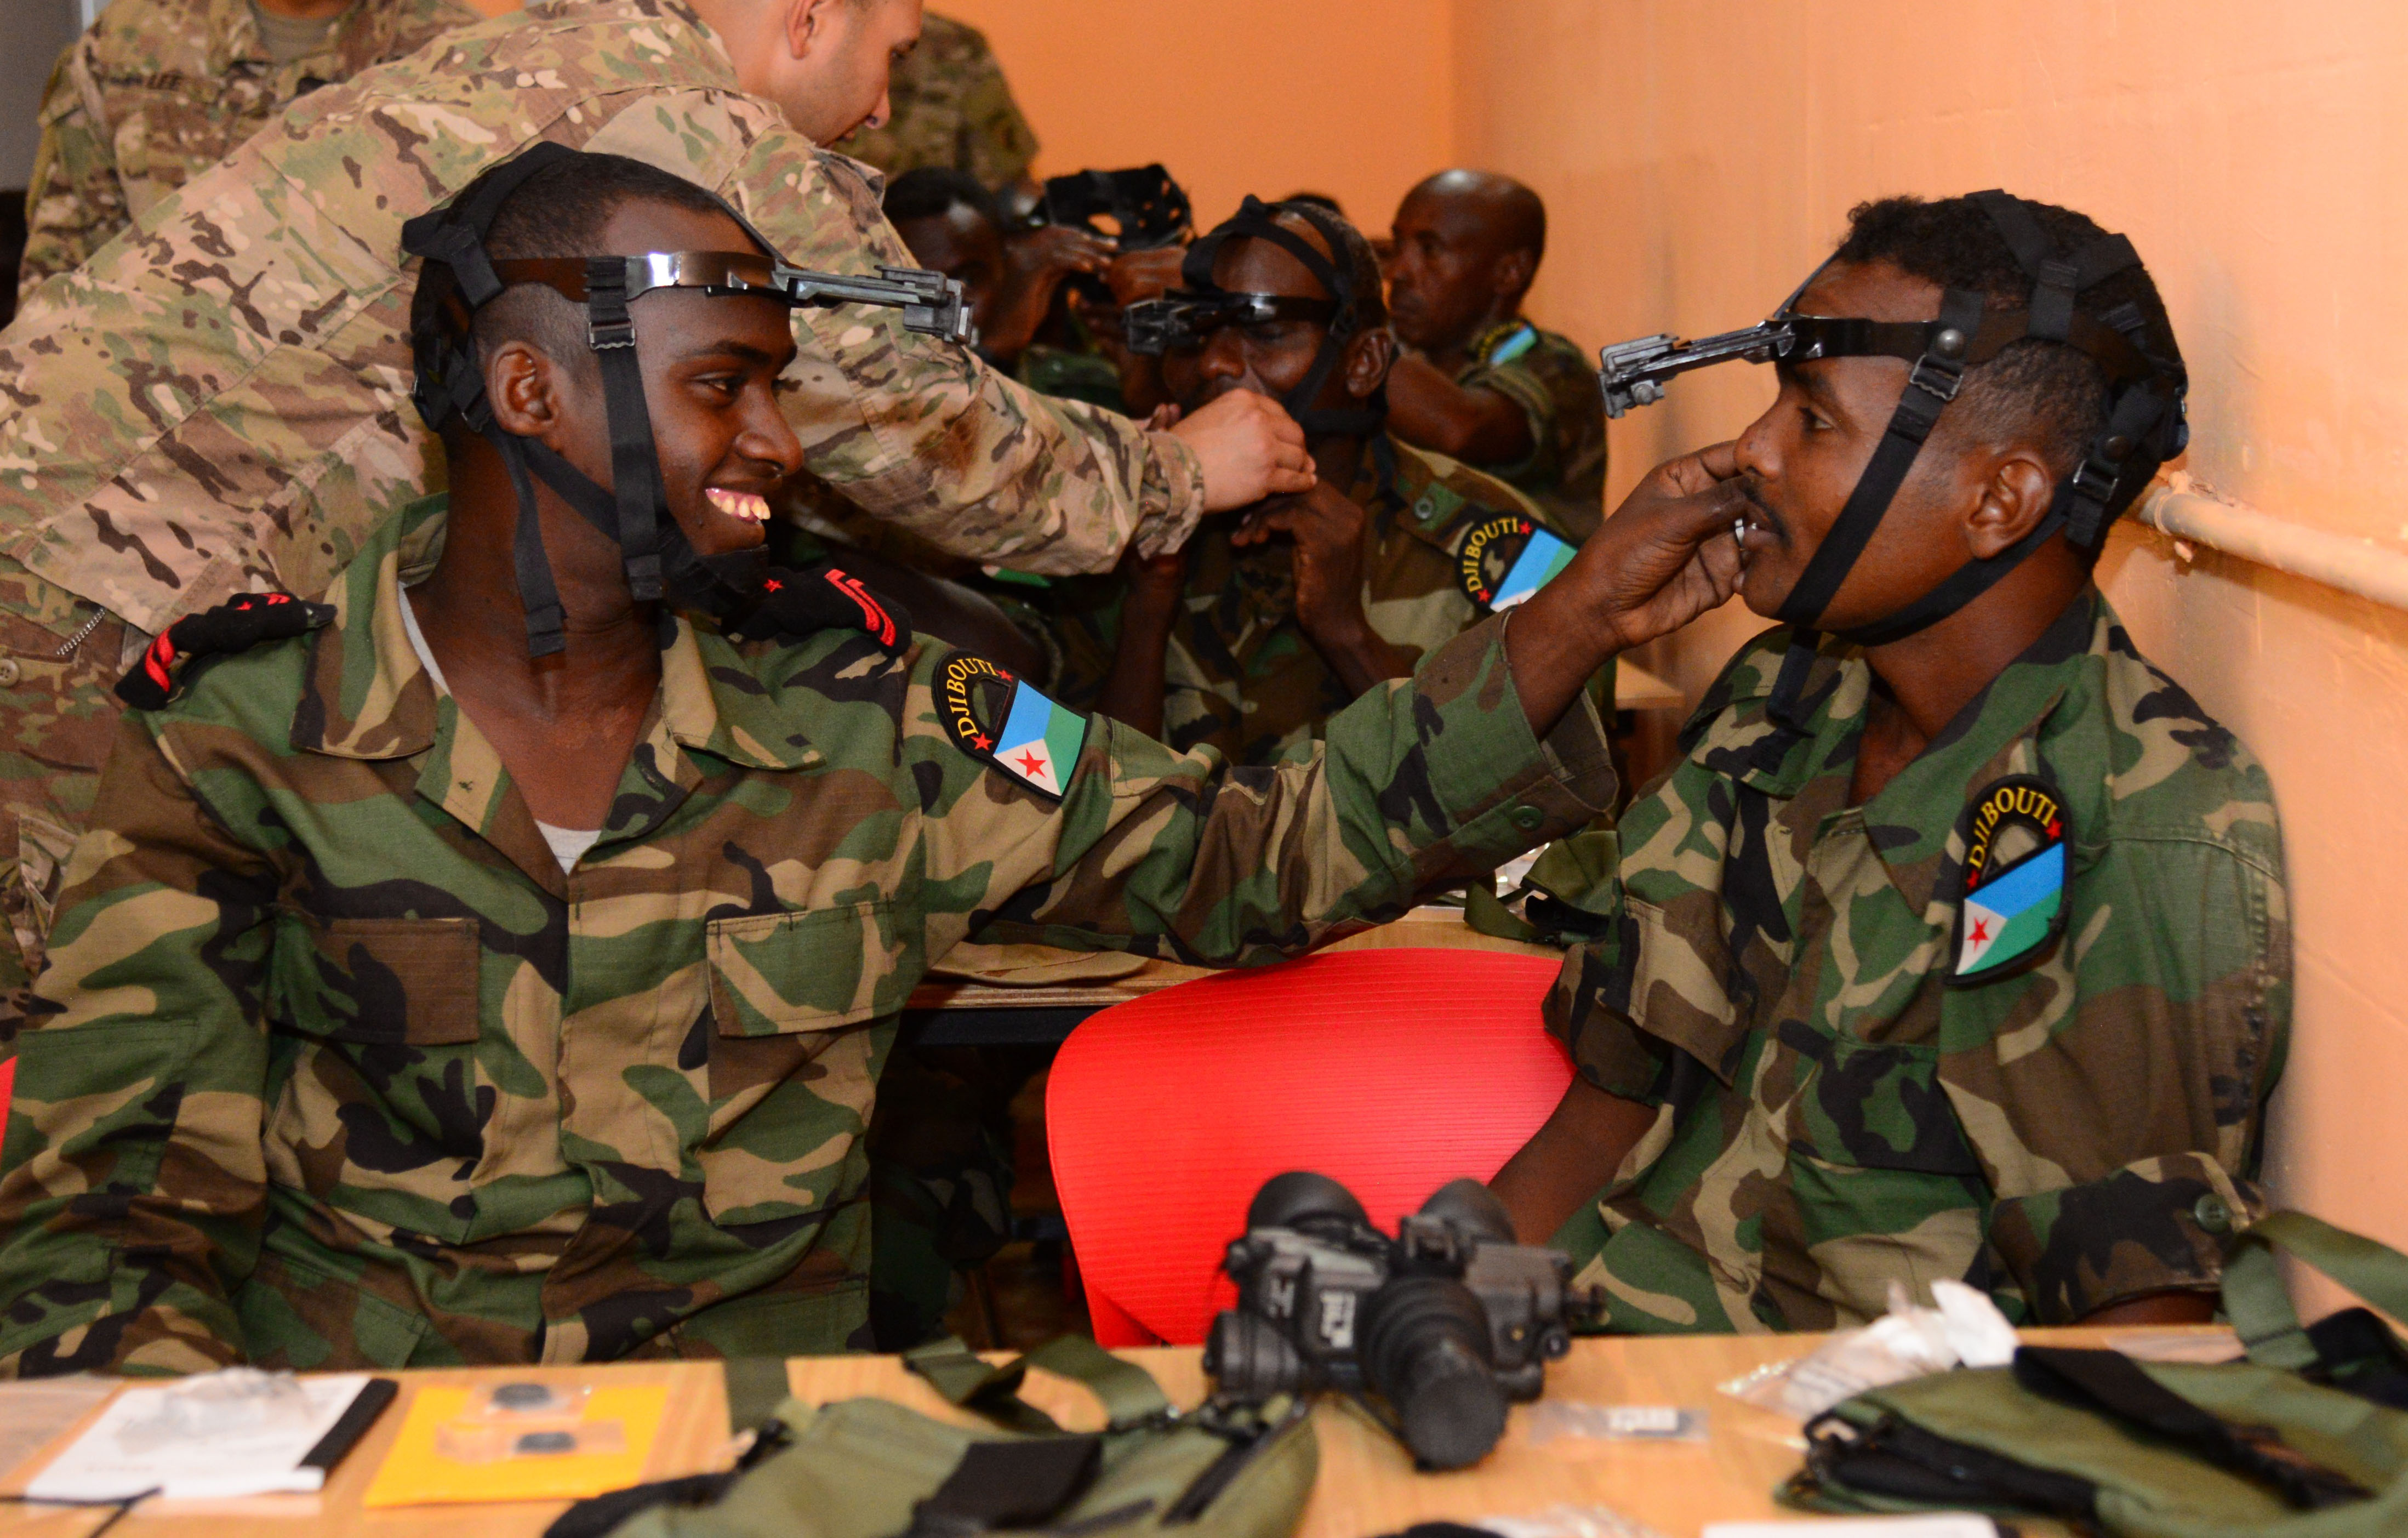 Djiboutian Army Cpl. Yosin, left, helps a fellow soldier, Mohamed, adjust his night vision goggle headmount during a night-vision goggle training course in Djibouti City, Djibouti, Oct. 10, 2016. Soldiers were tested on how quickly they could don their NVG gear during the class. (U.S. Air Force photo by Staff Sgt. Benjamin Raughton)